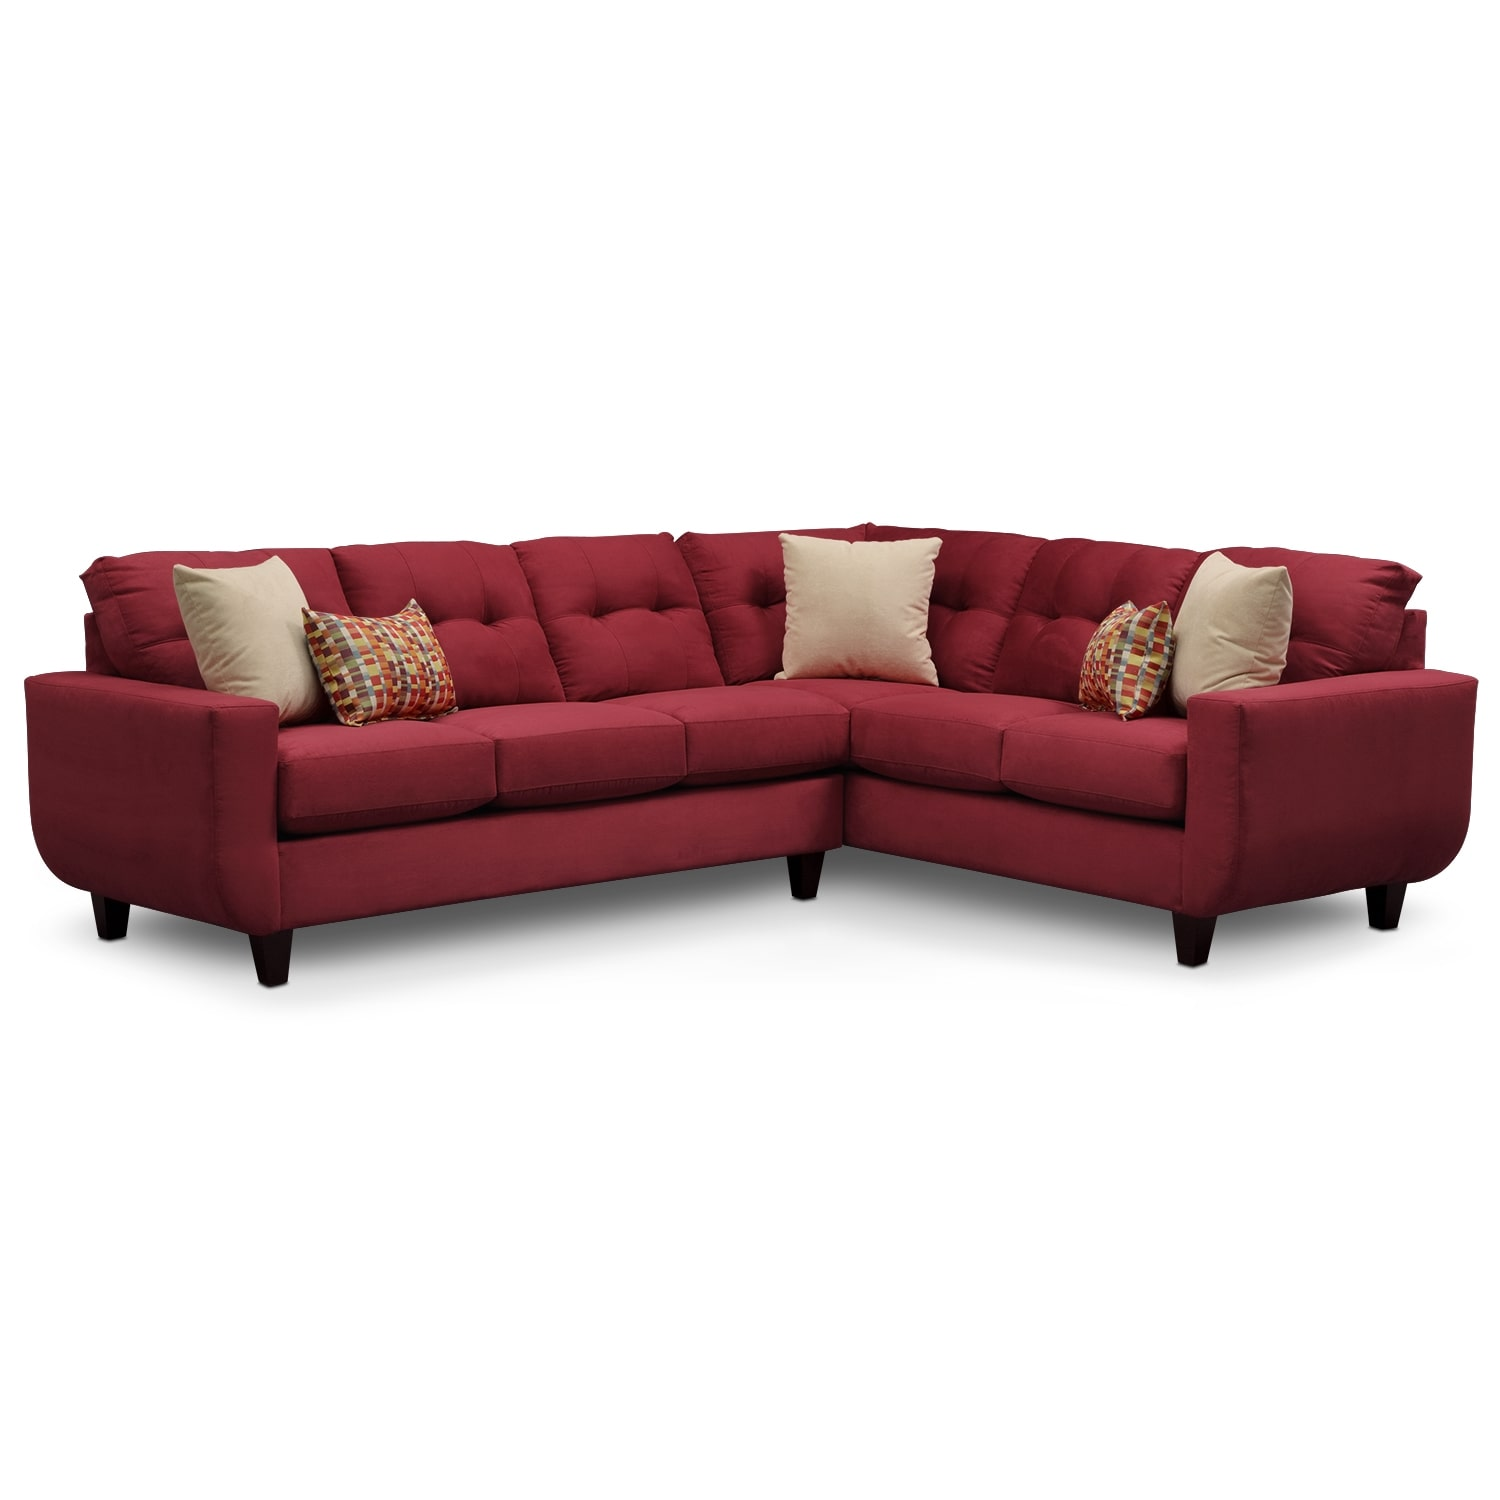 Living Room Furniture - West Village 2-Piece Sectional - Red